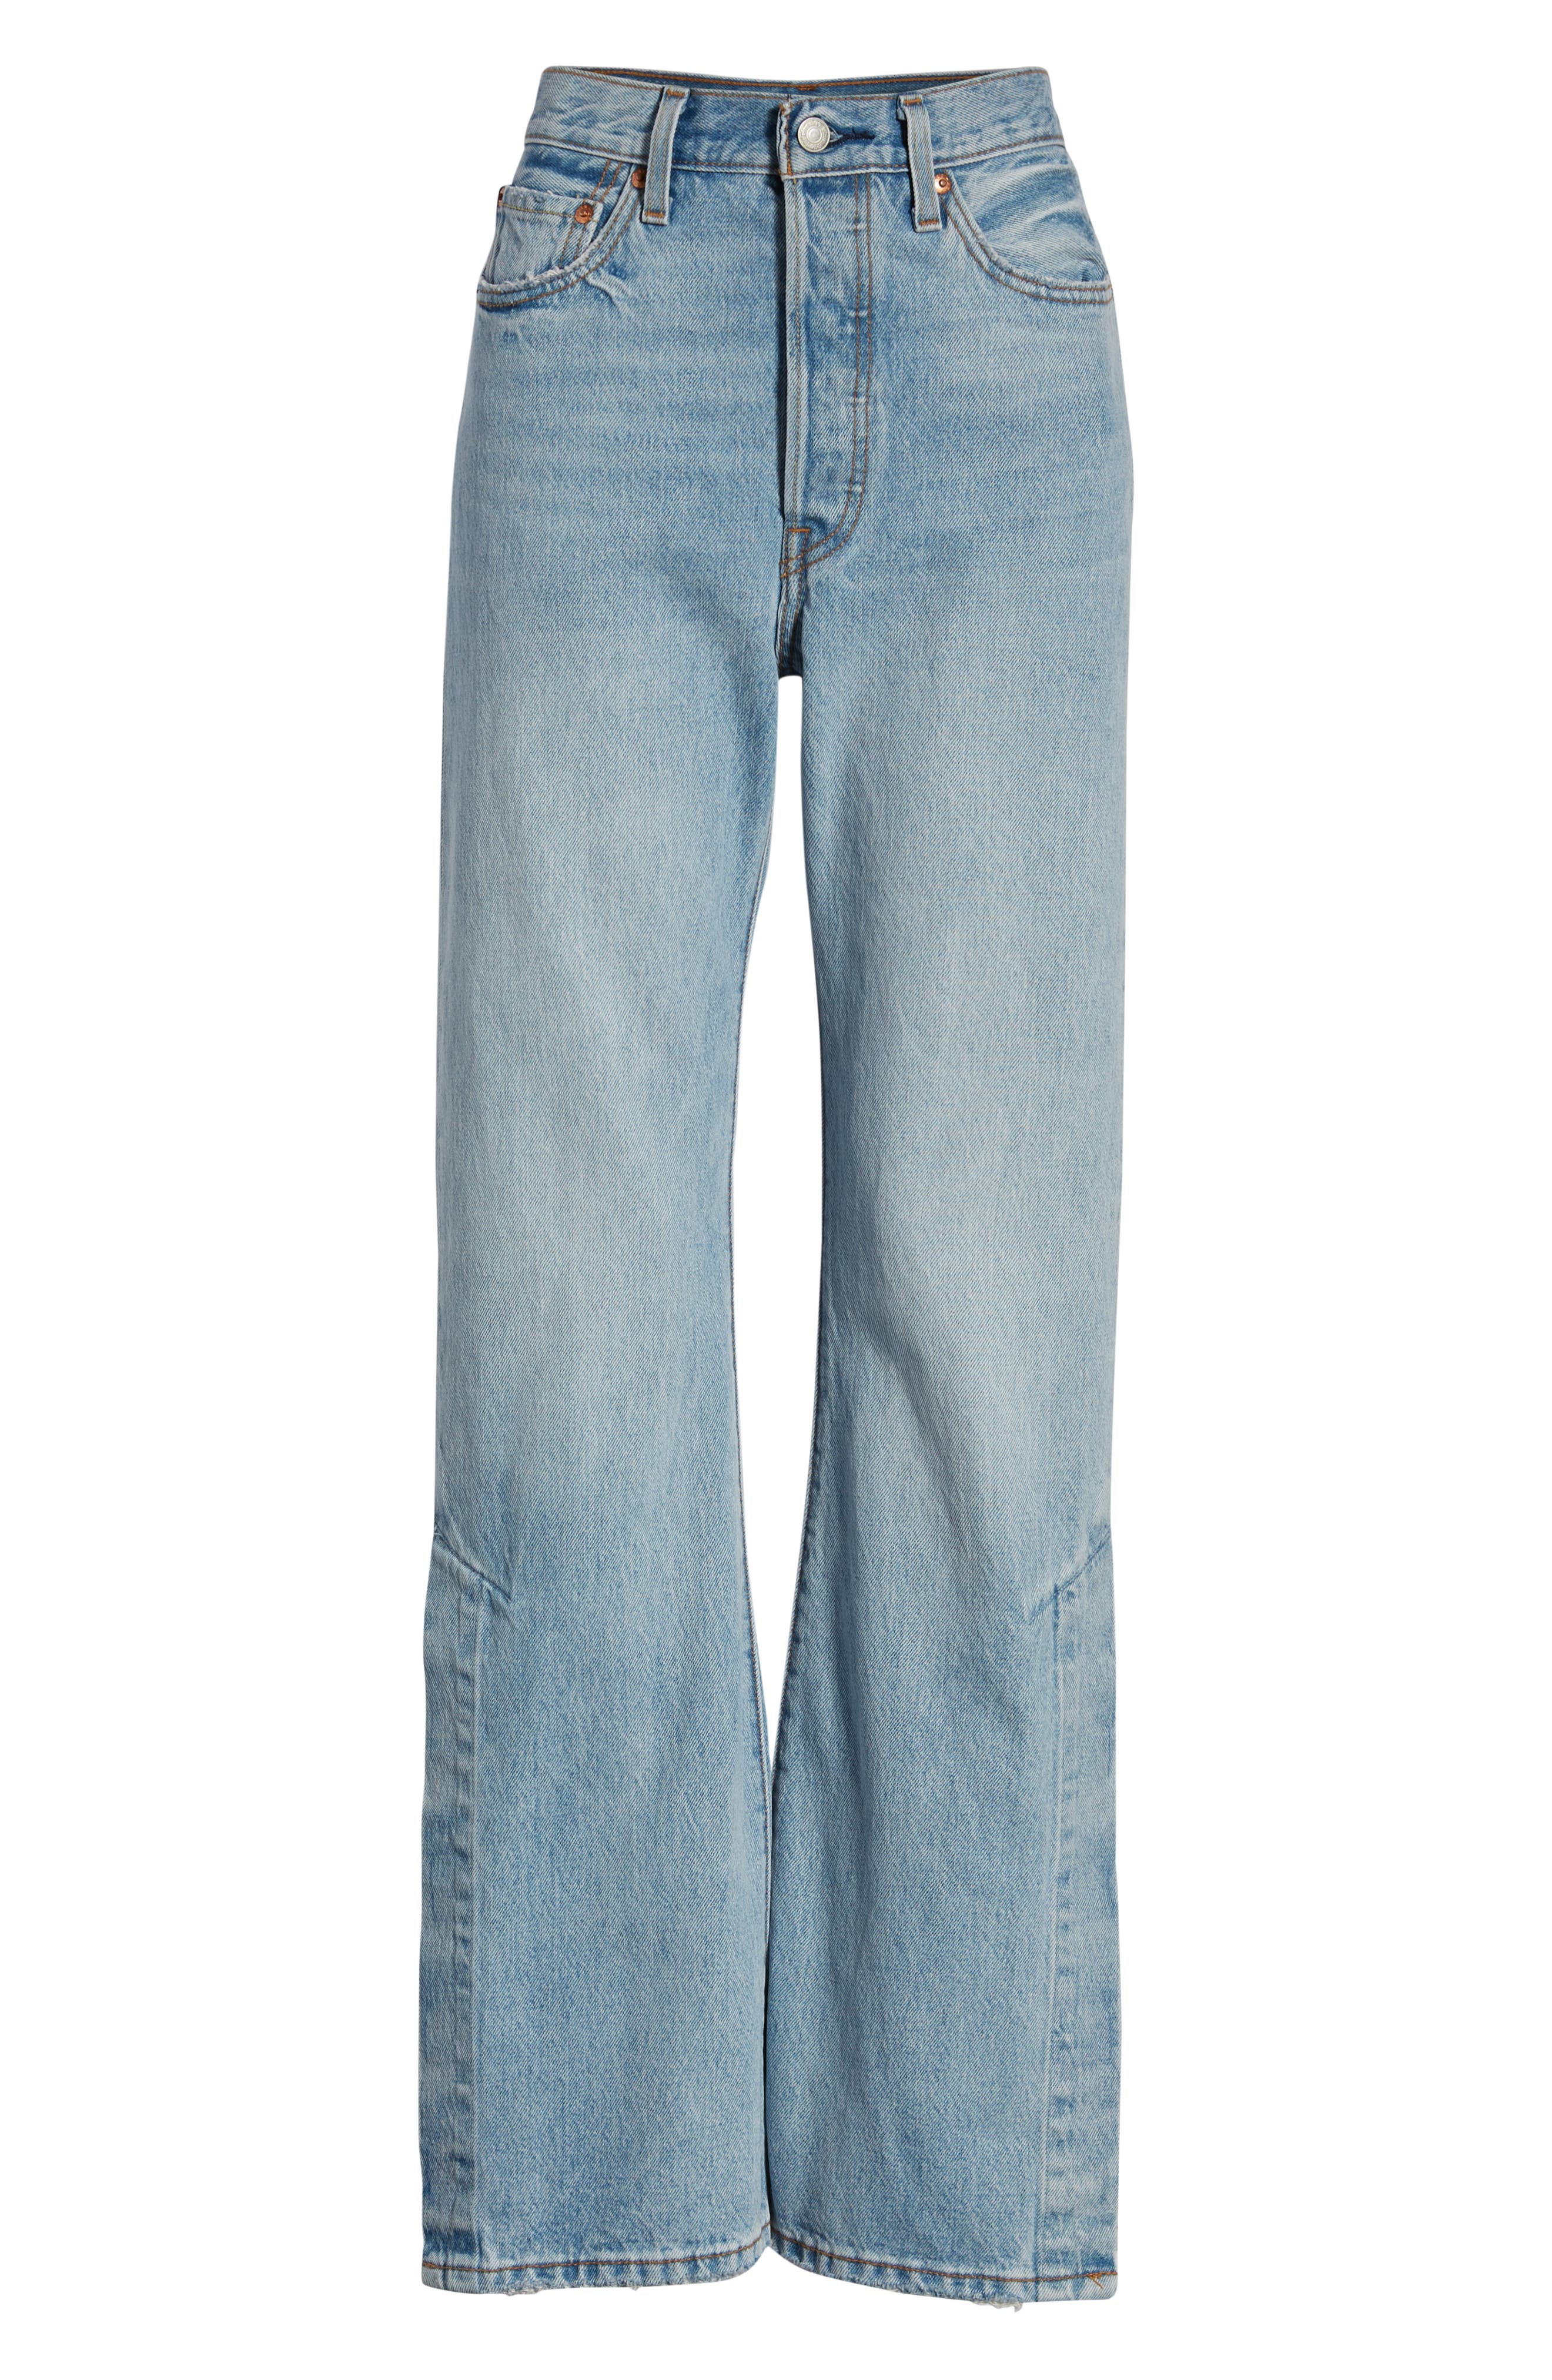 LEVI'S<SUP>®</SUP>, Ribcage Super High Waist Split Flare Jeans, Alternate thumbnail 7, color, DAZED AND CONFUSED